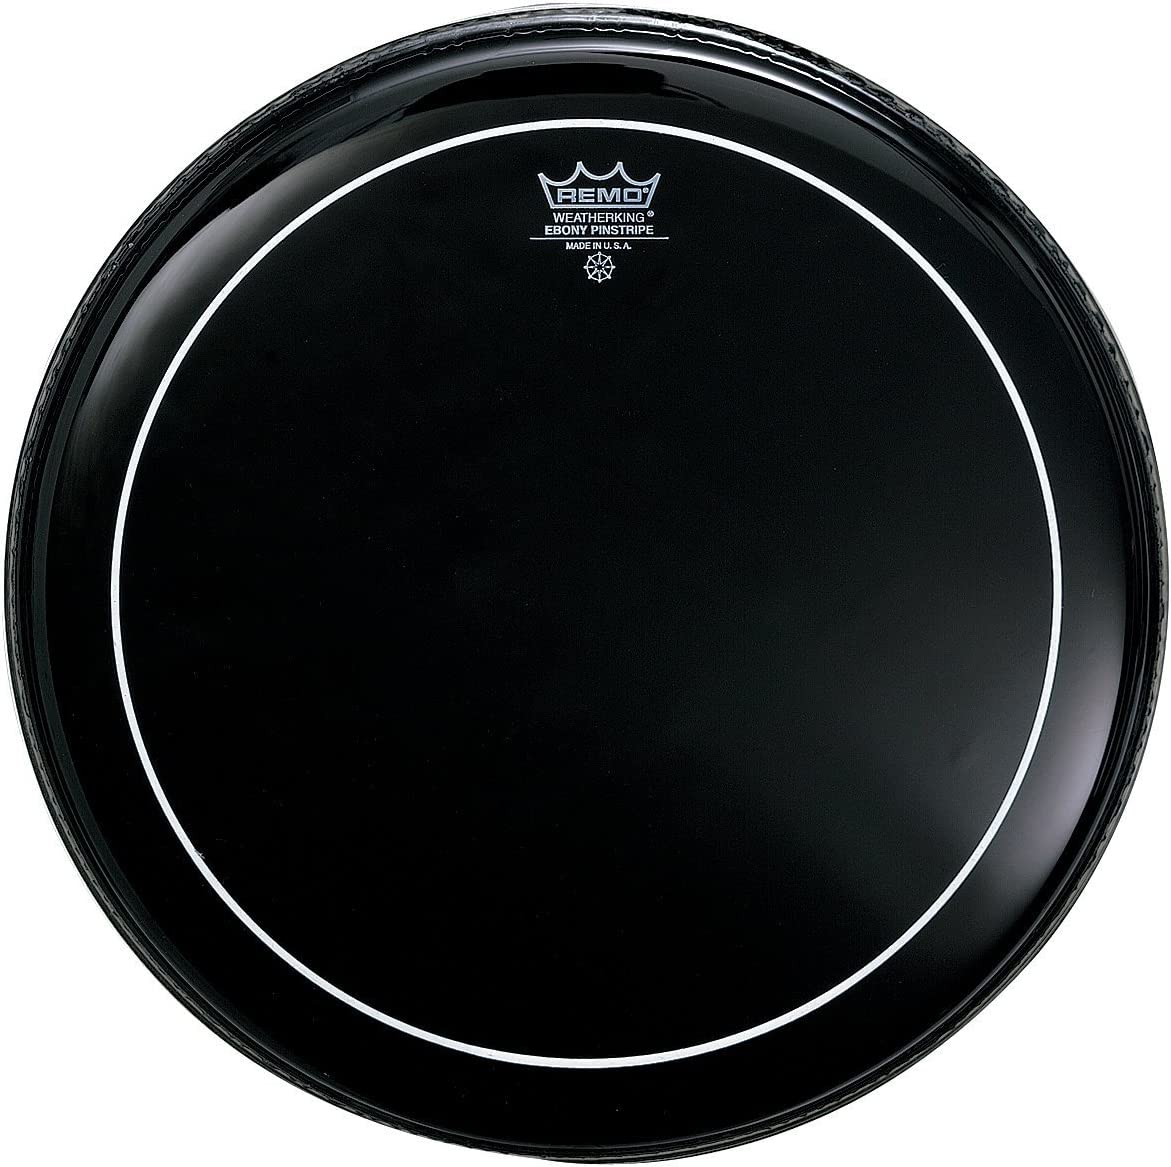 Remo ES0606PS Ebony Pinstripe Drum Head, 6-Inch 71auXy3VgWL